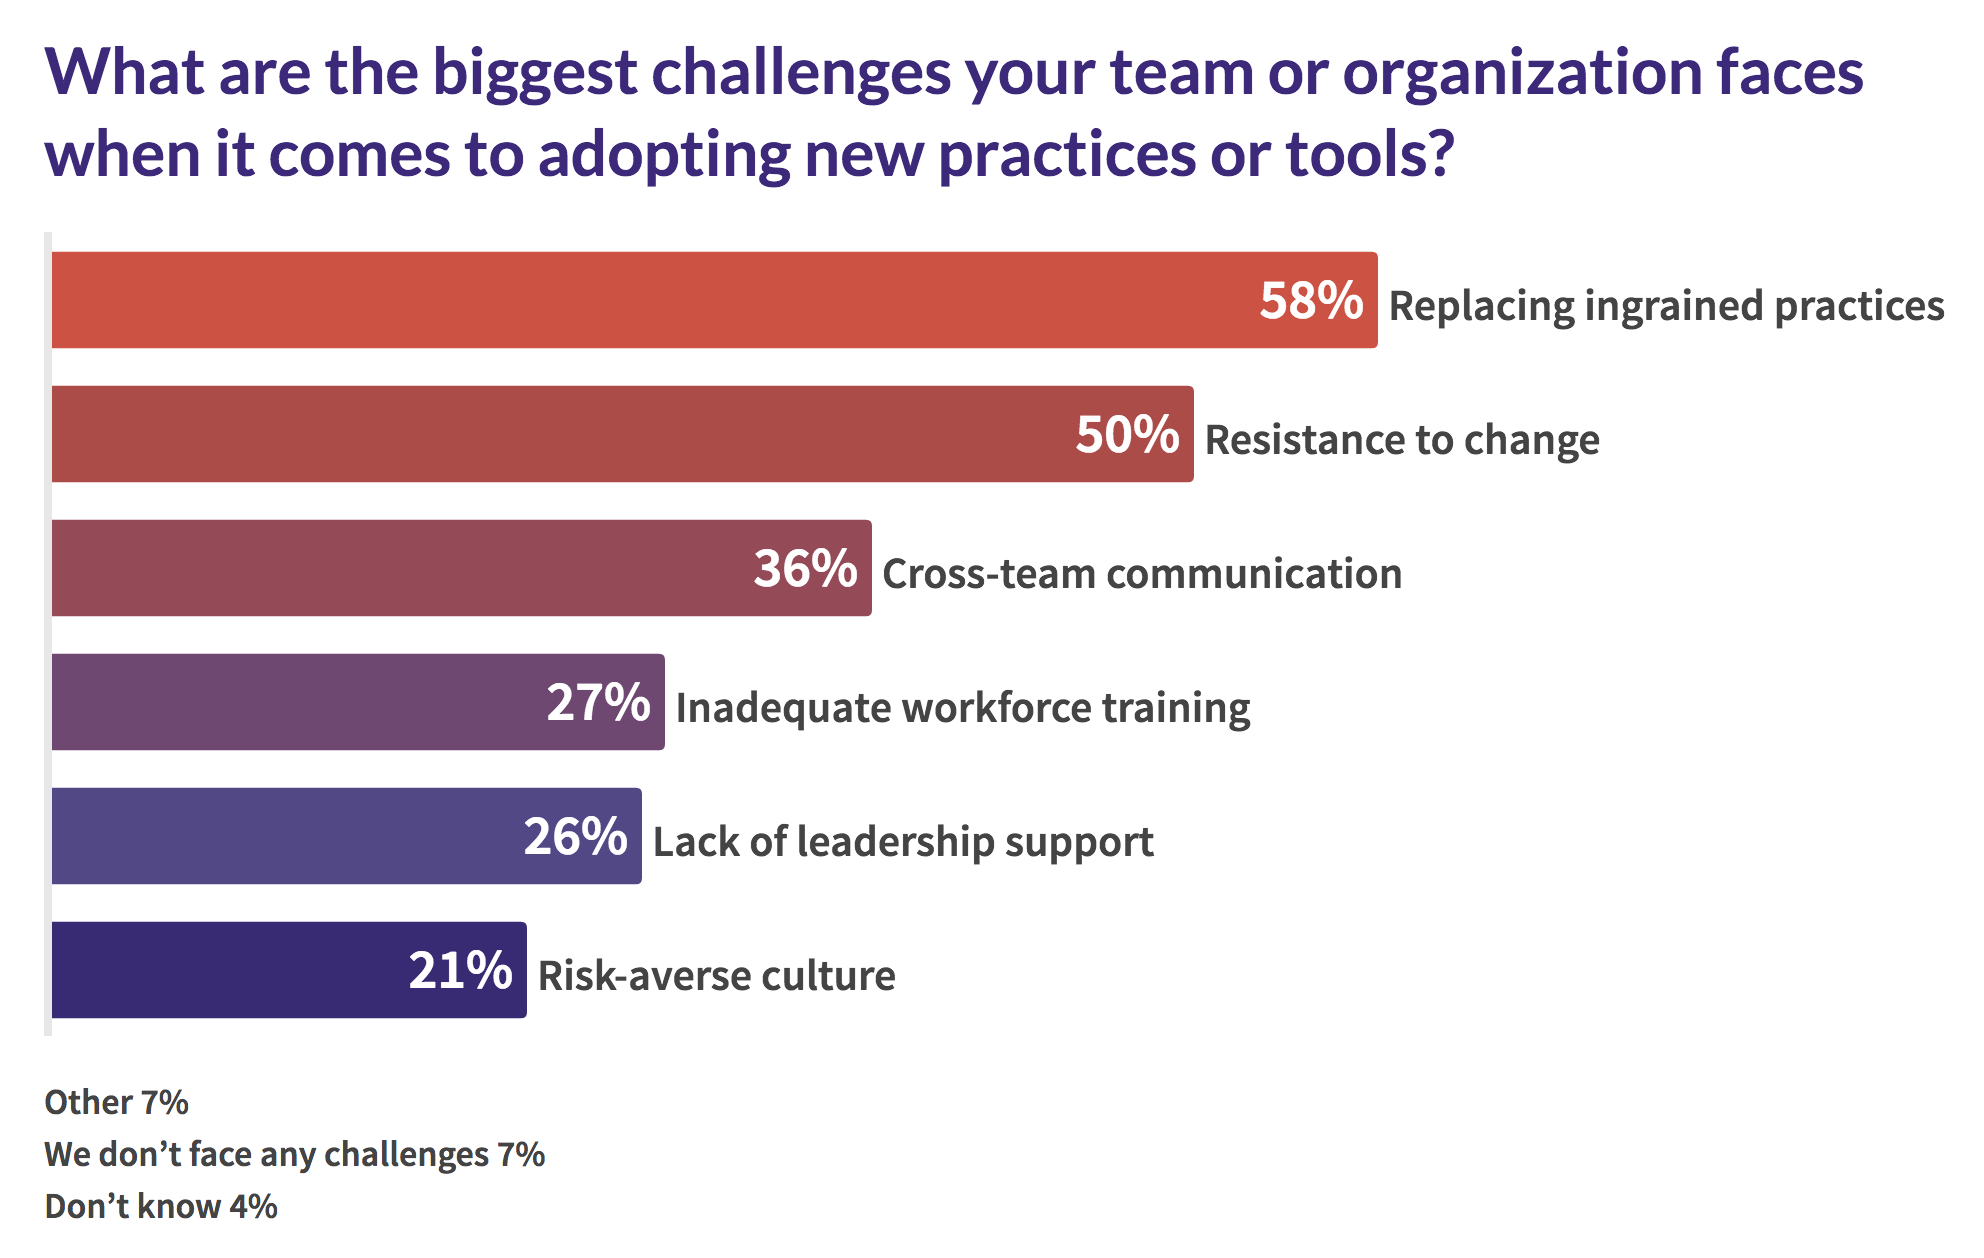 biggest challenges to adopting new tools and practices